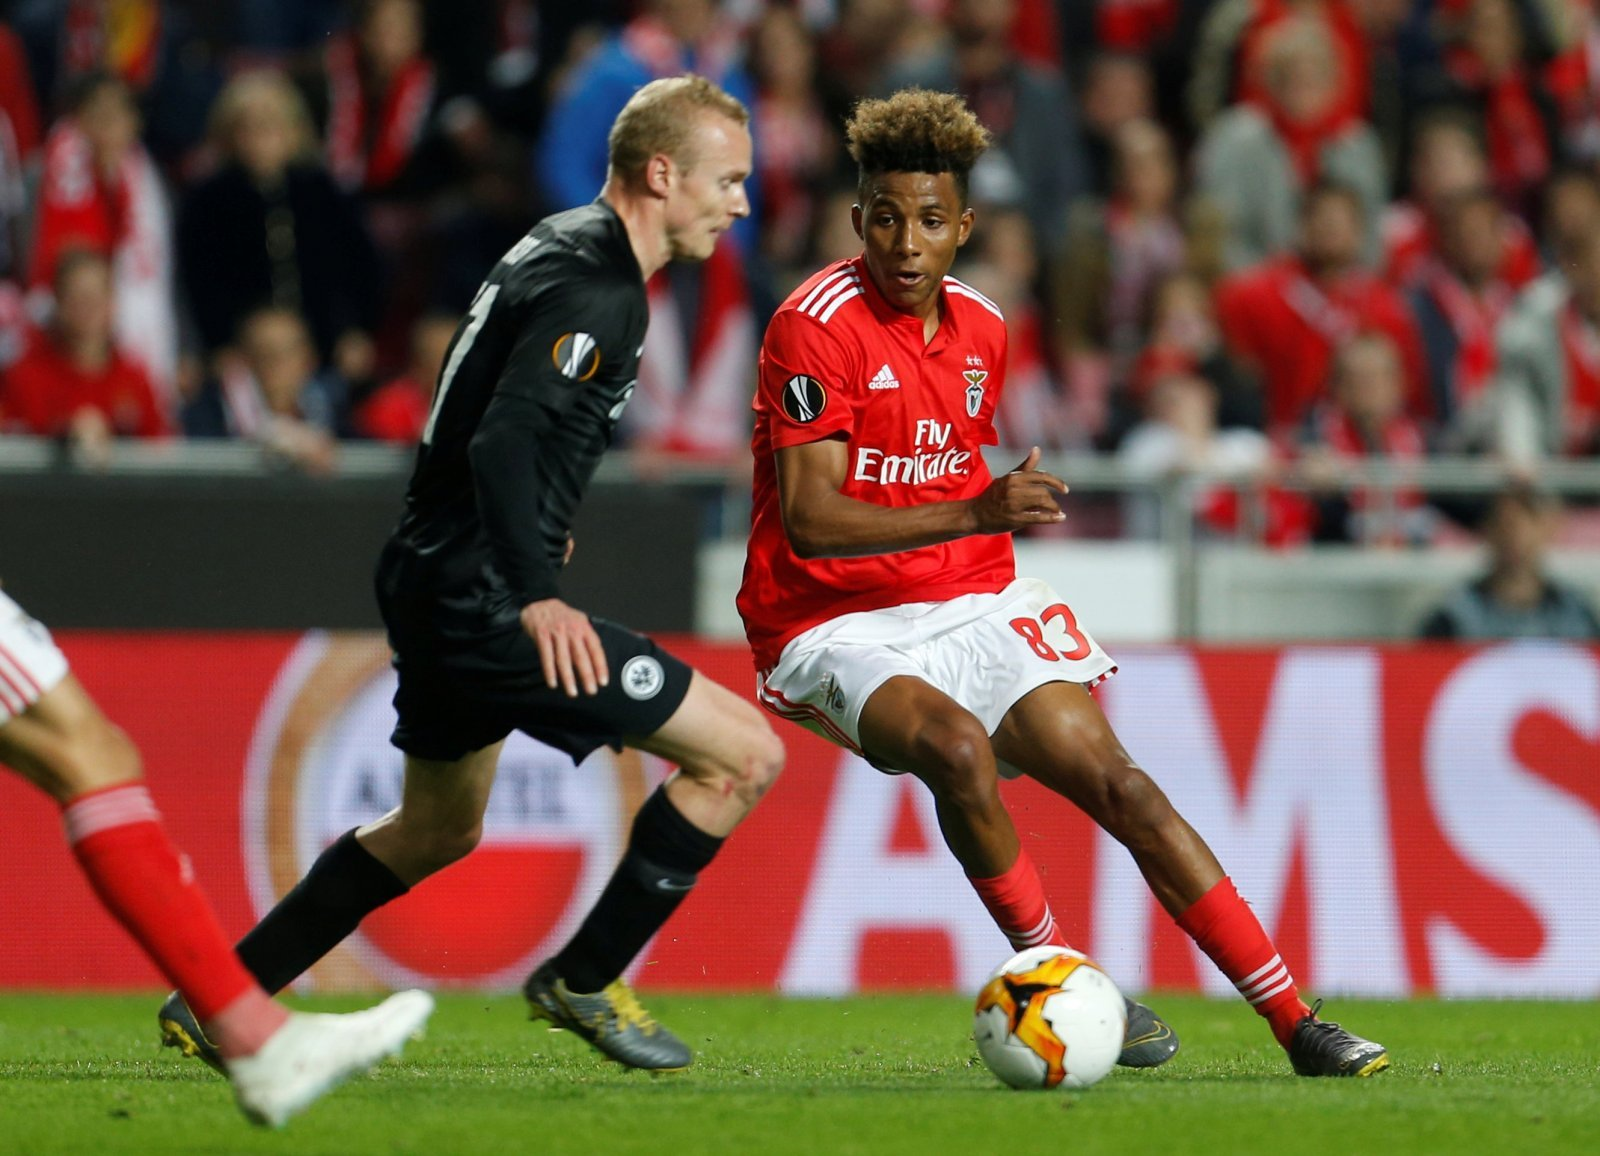 Liverpool: Gedson Fernandes is no significant upgrade over Klopp's current midfield